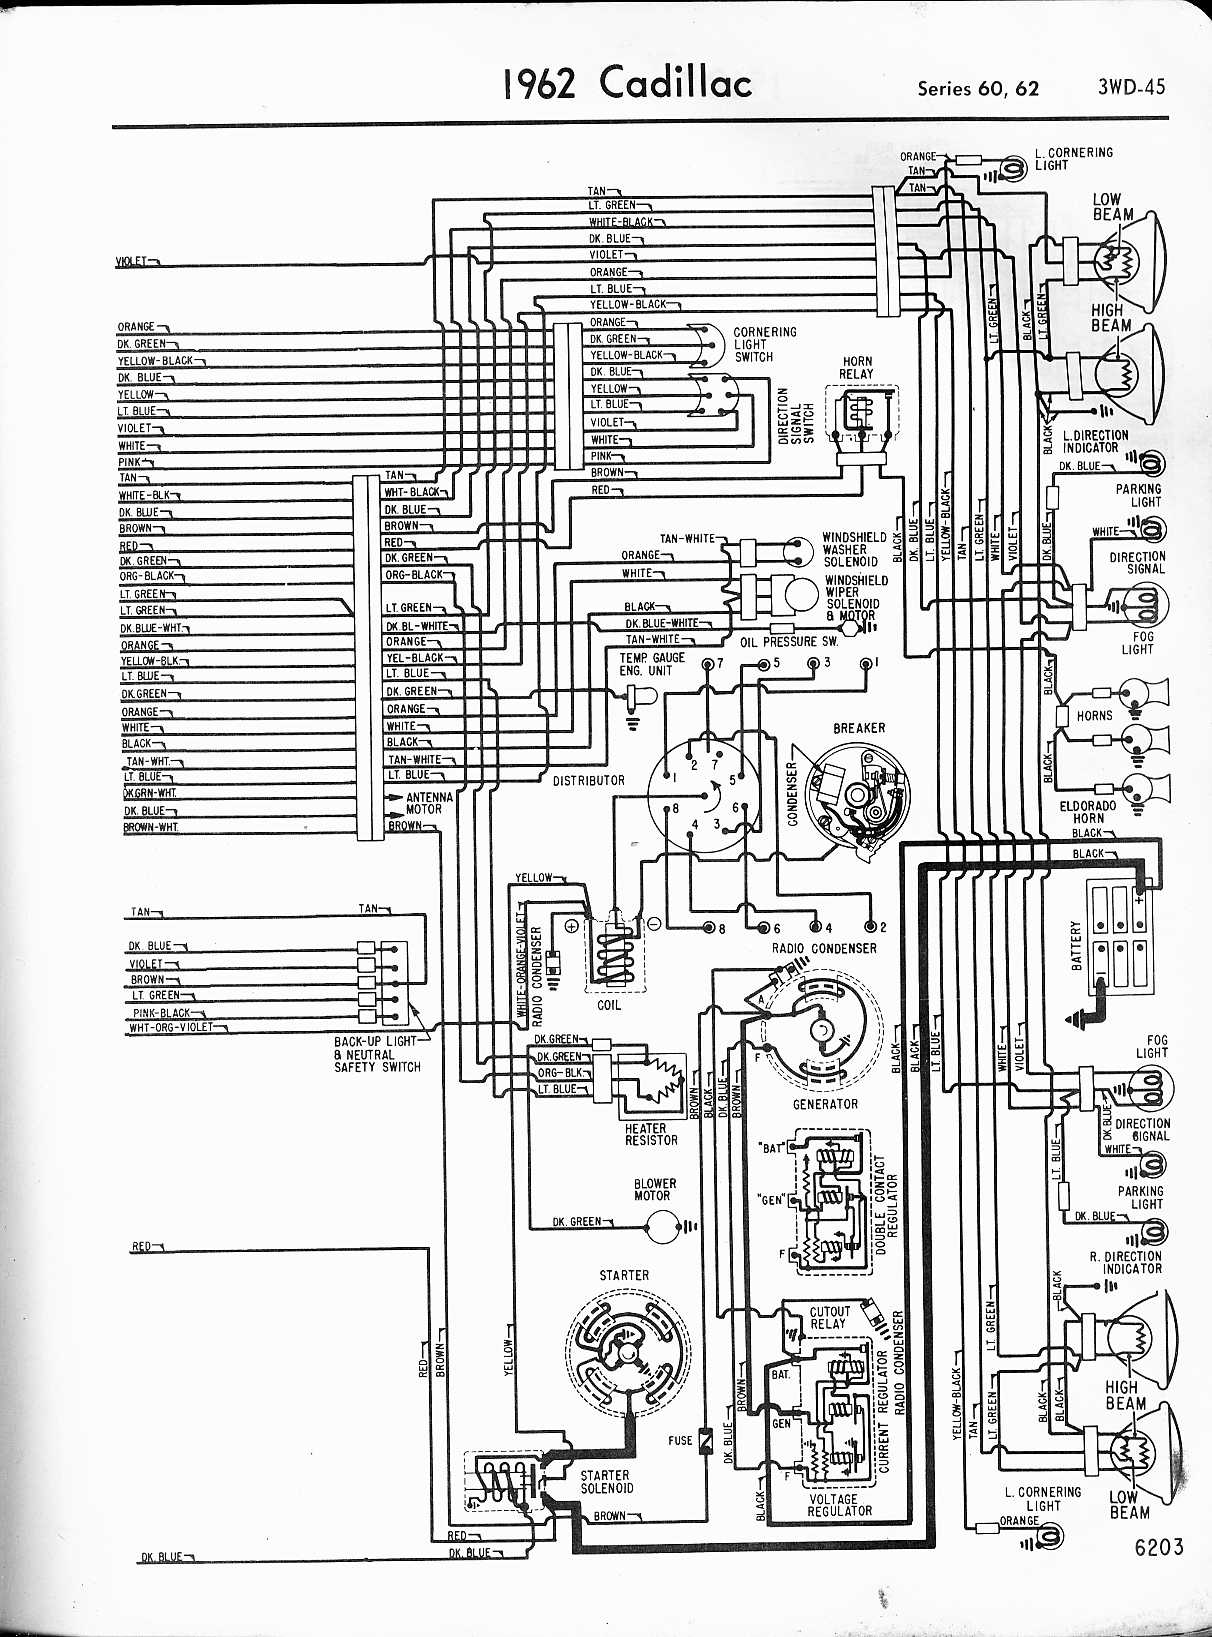 Cadillac Wiring Diagrams 1957 1965 01 Bmw X5 Vacuum Diagram Schematic 1962 Series 60 62 Right